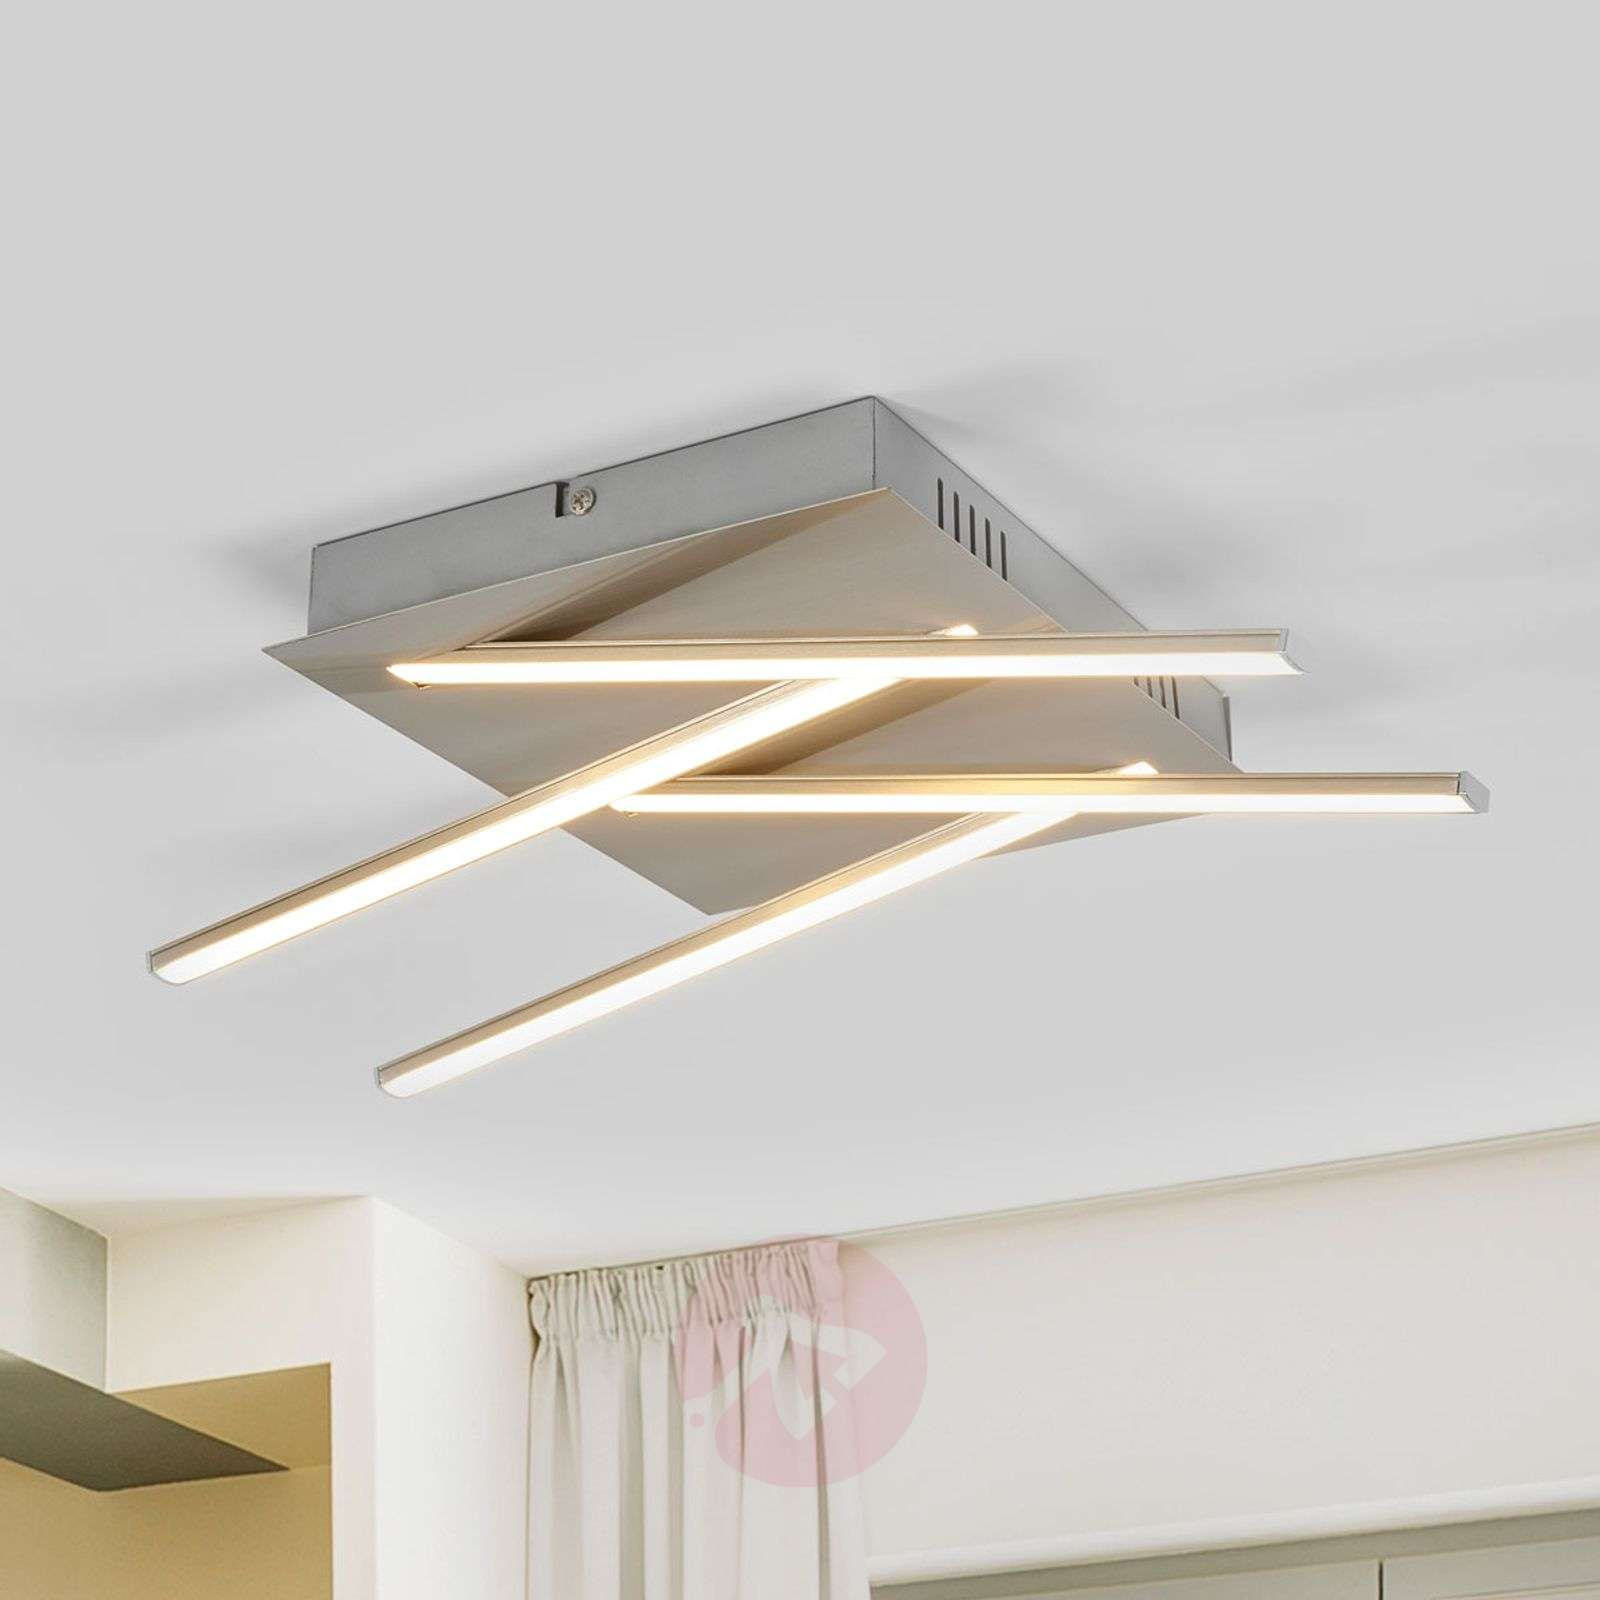 Lenhard LED ceiling lamp with interesting design-9985063-02